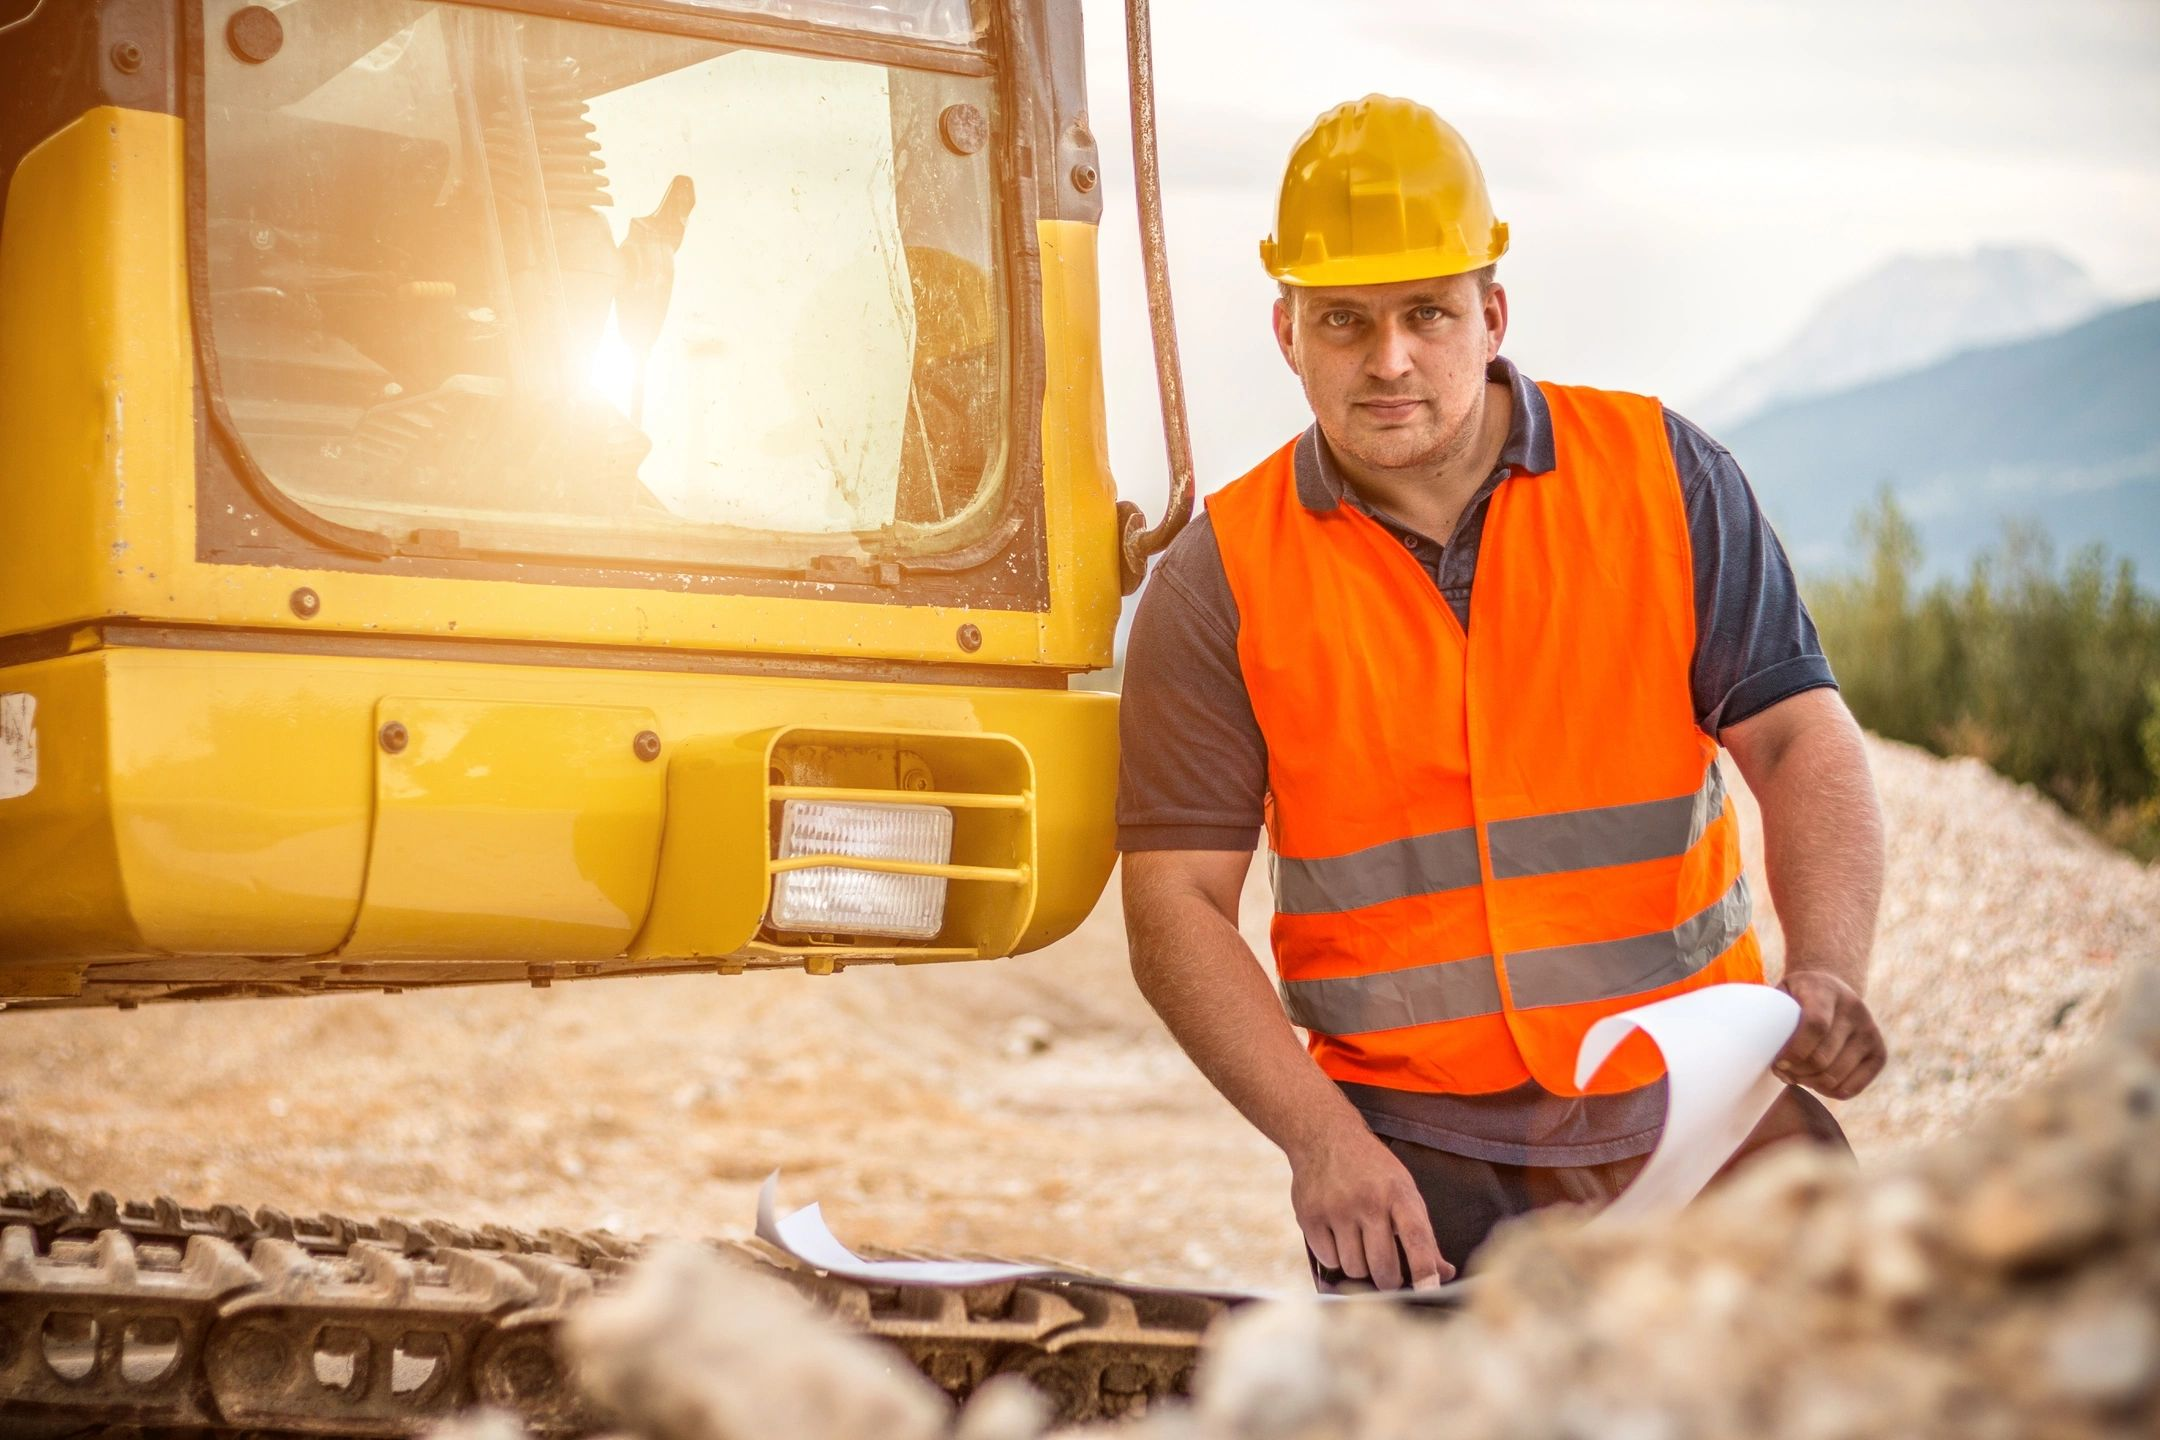 Important Considerations For Every Construction Project